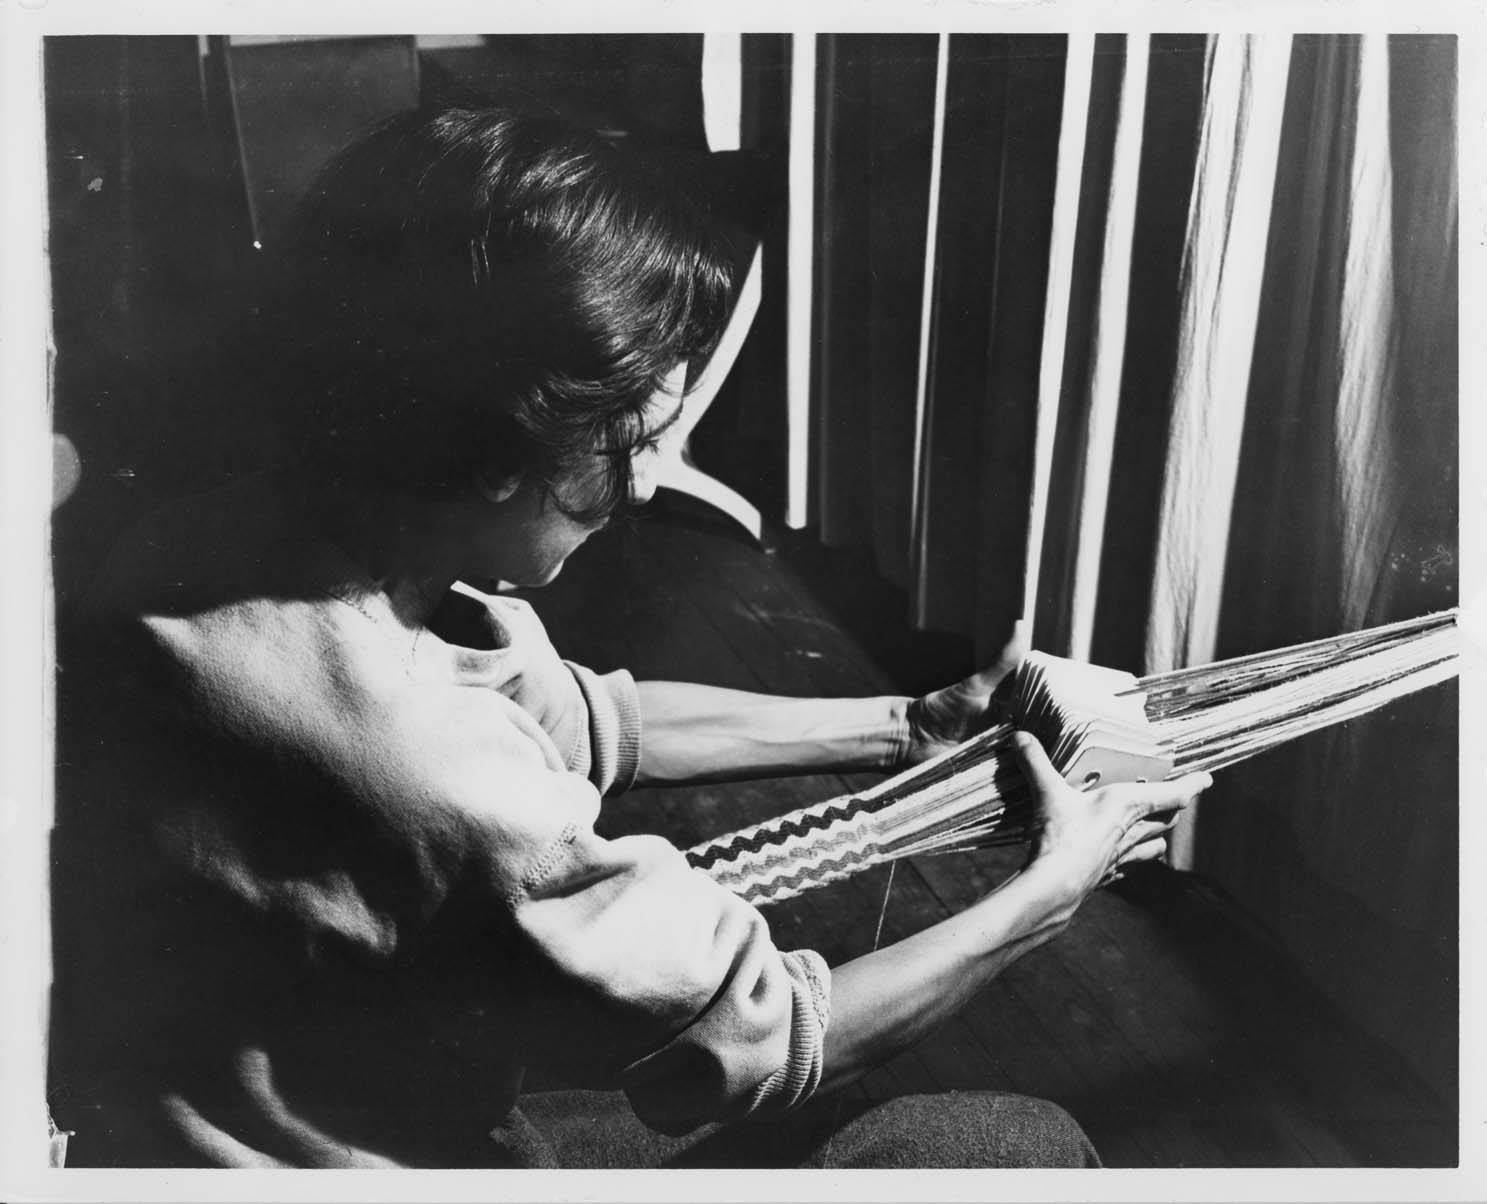 A photo of Anni Albers card weaving at Black Mountain College.